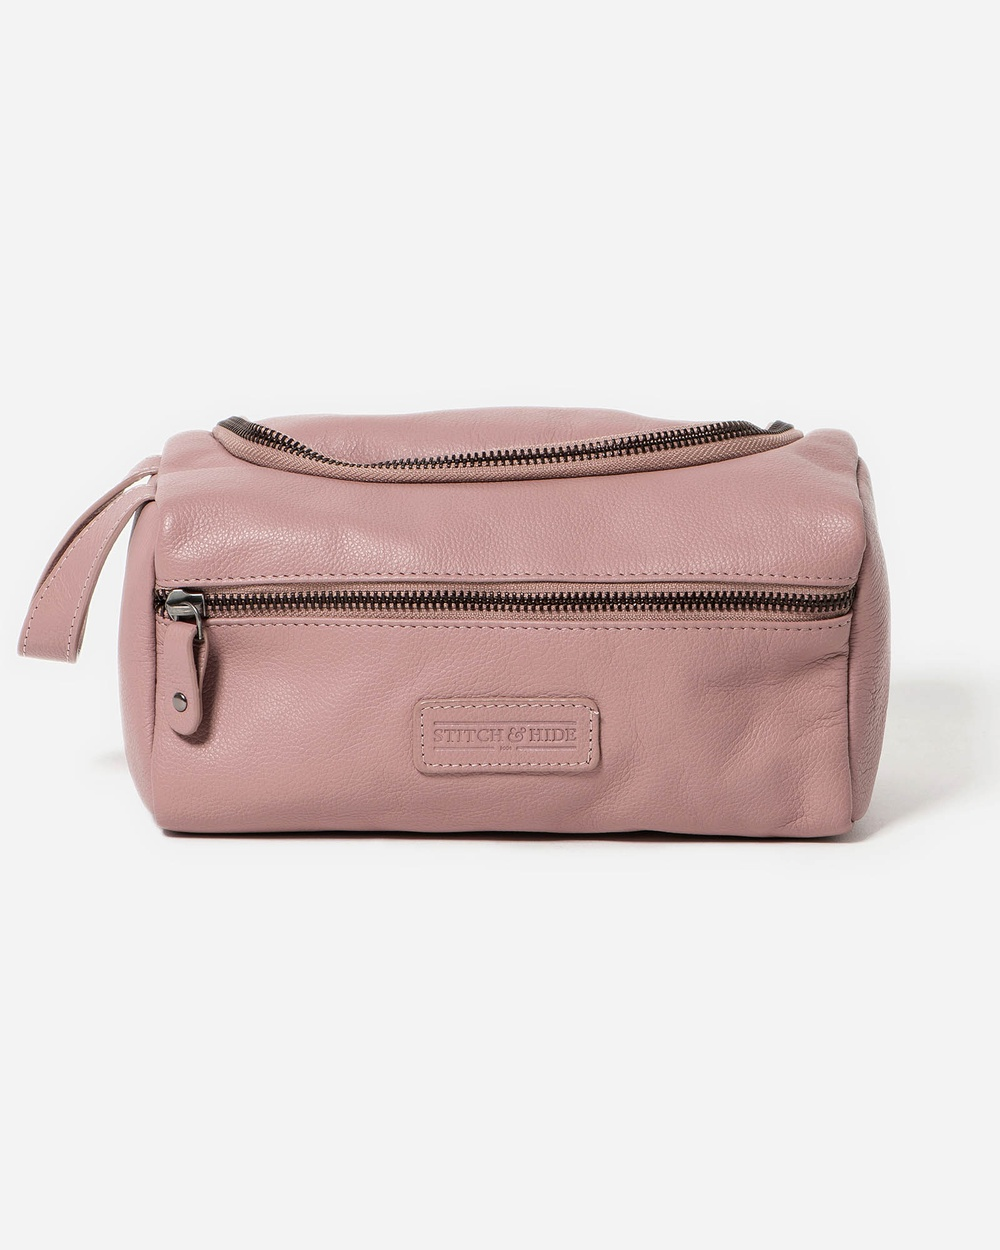 Stitch & Hide Jett Toiletry Bag Travel and Luggage Dusty Rose